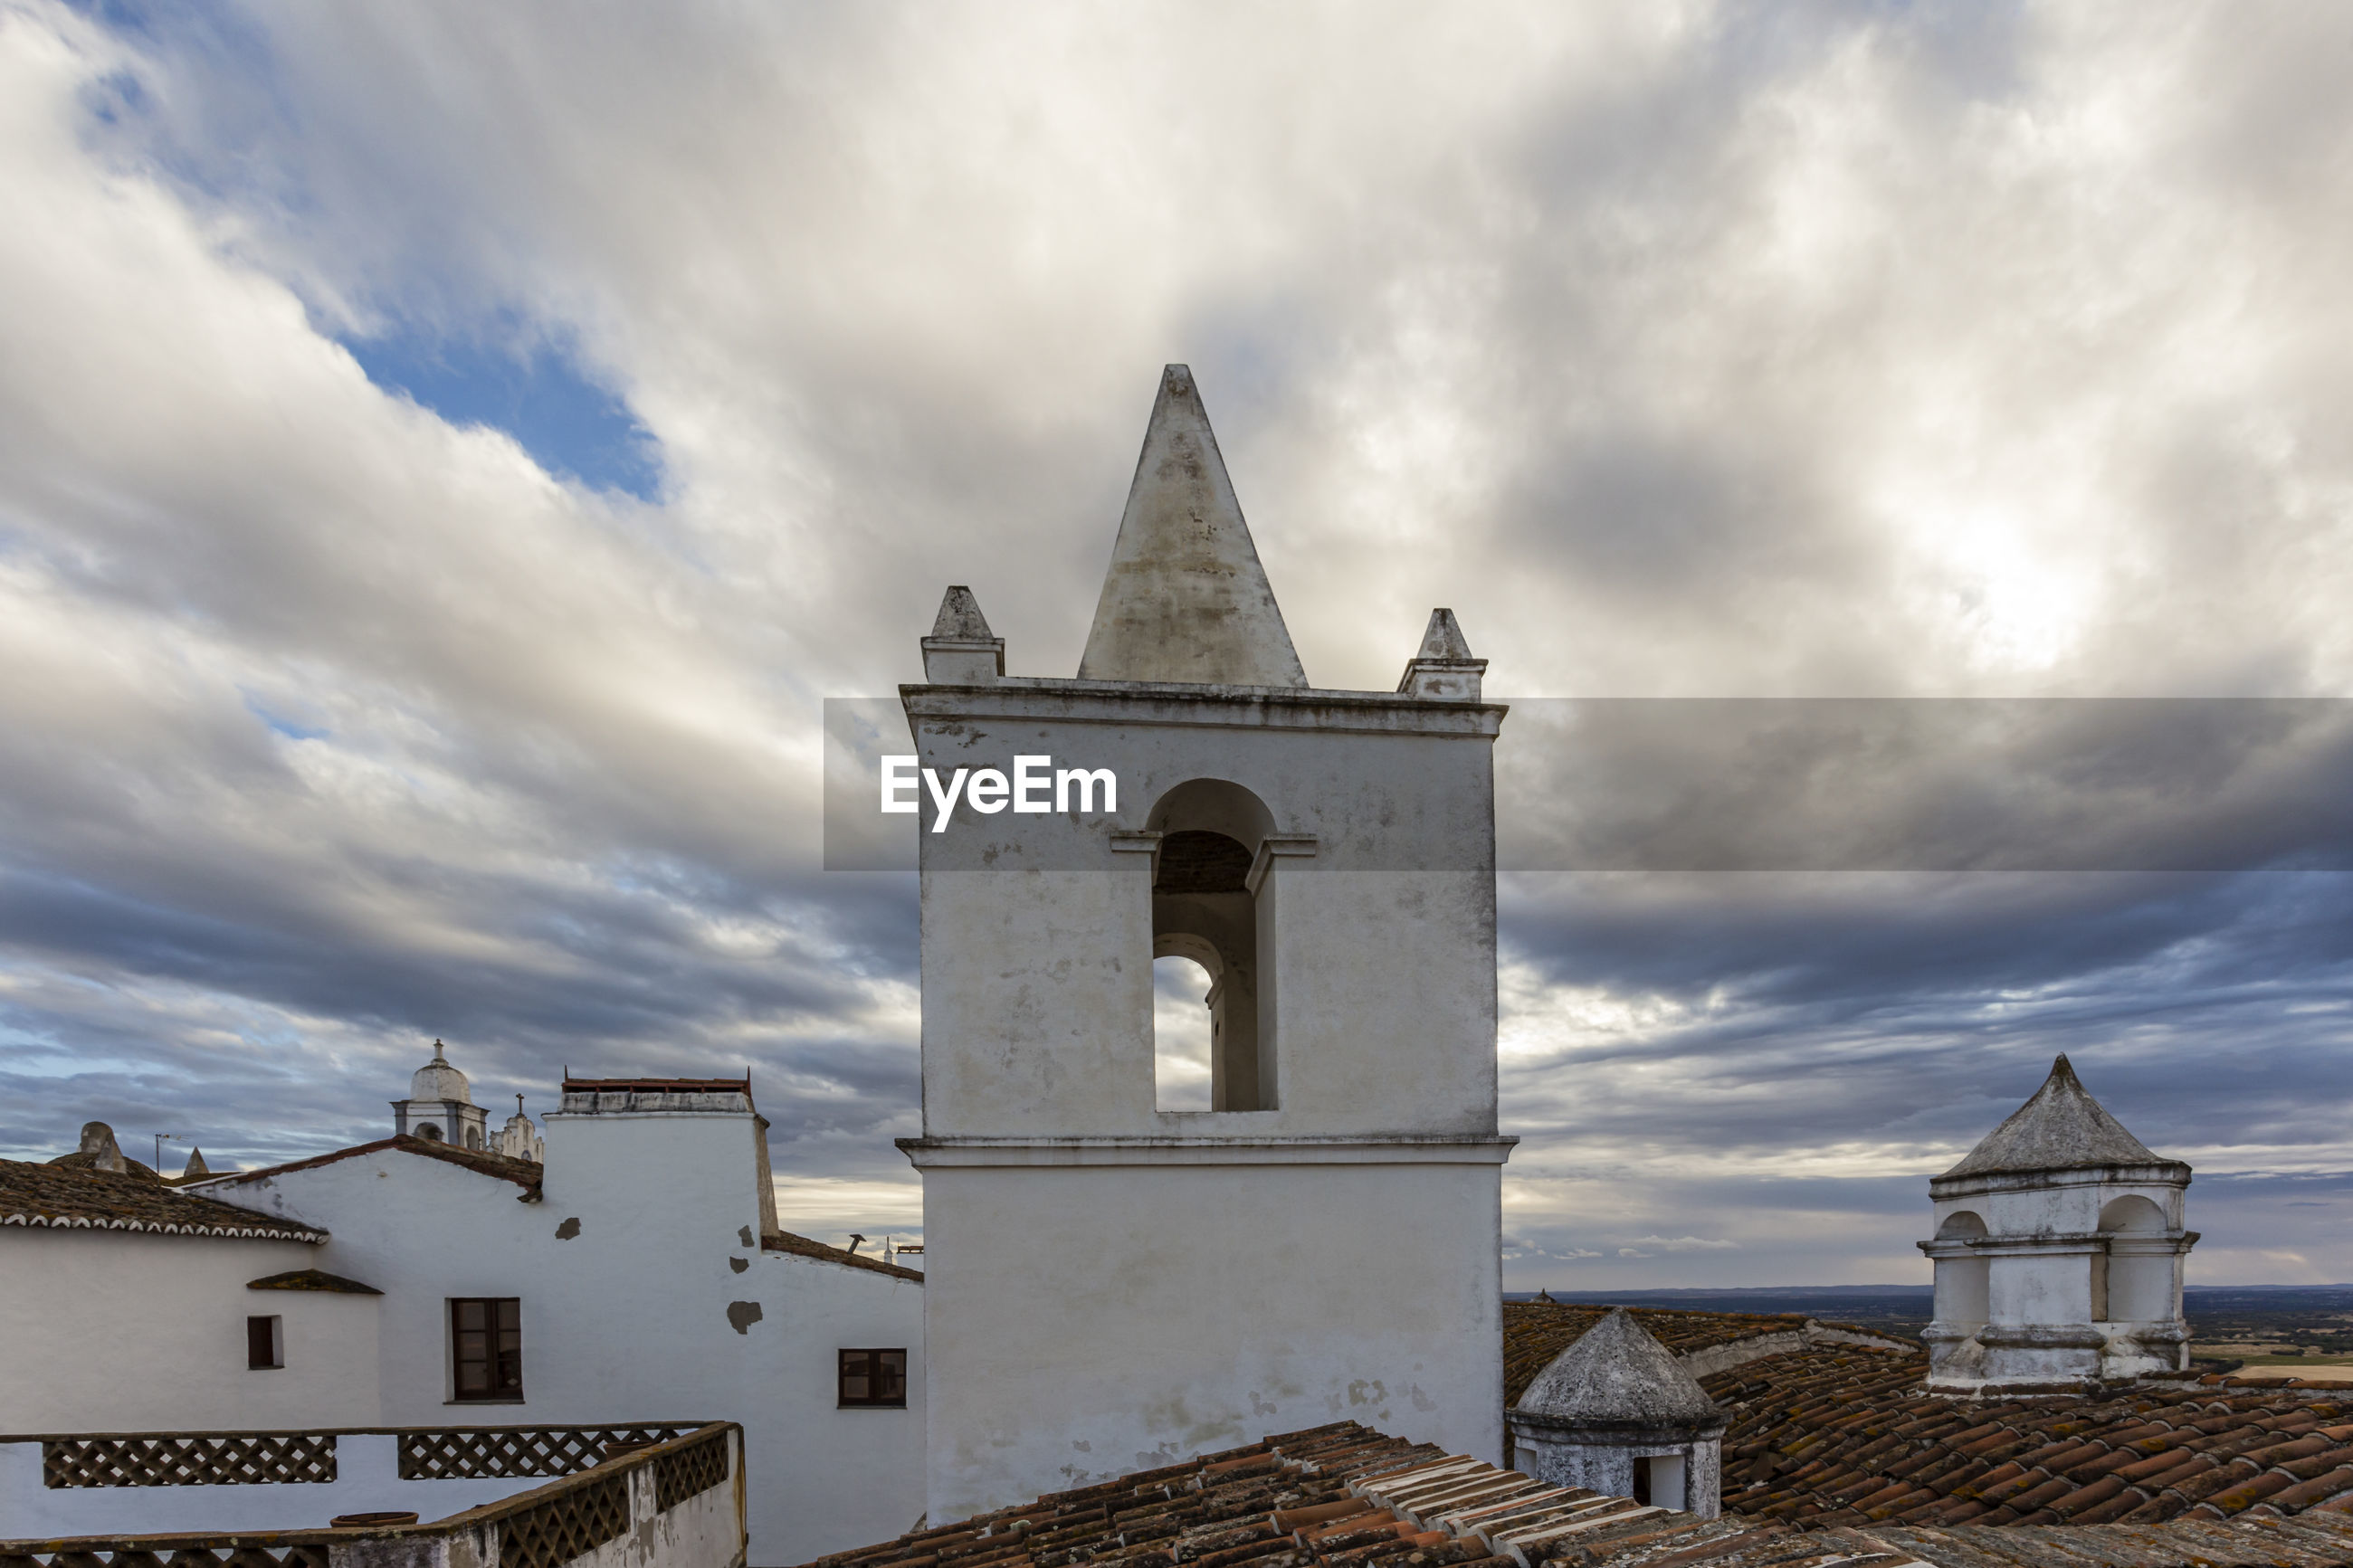 LOW ANGLE VIEW OF CHURCH AND BUILDINGS AGAINST SKY